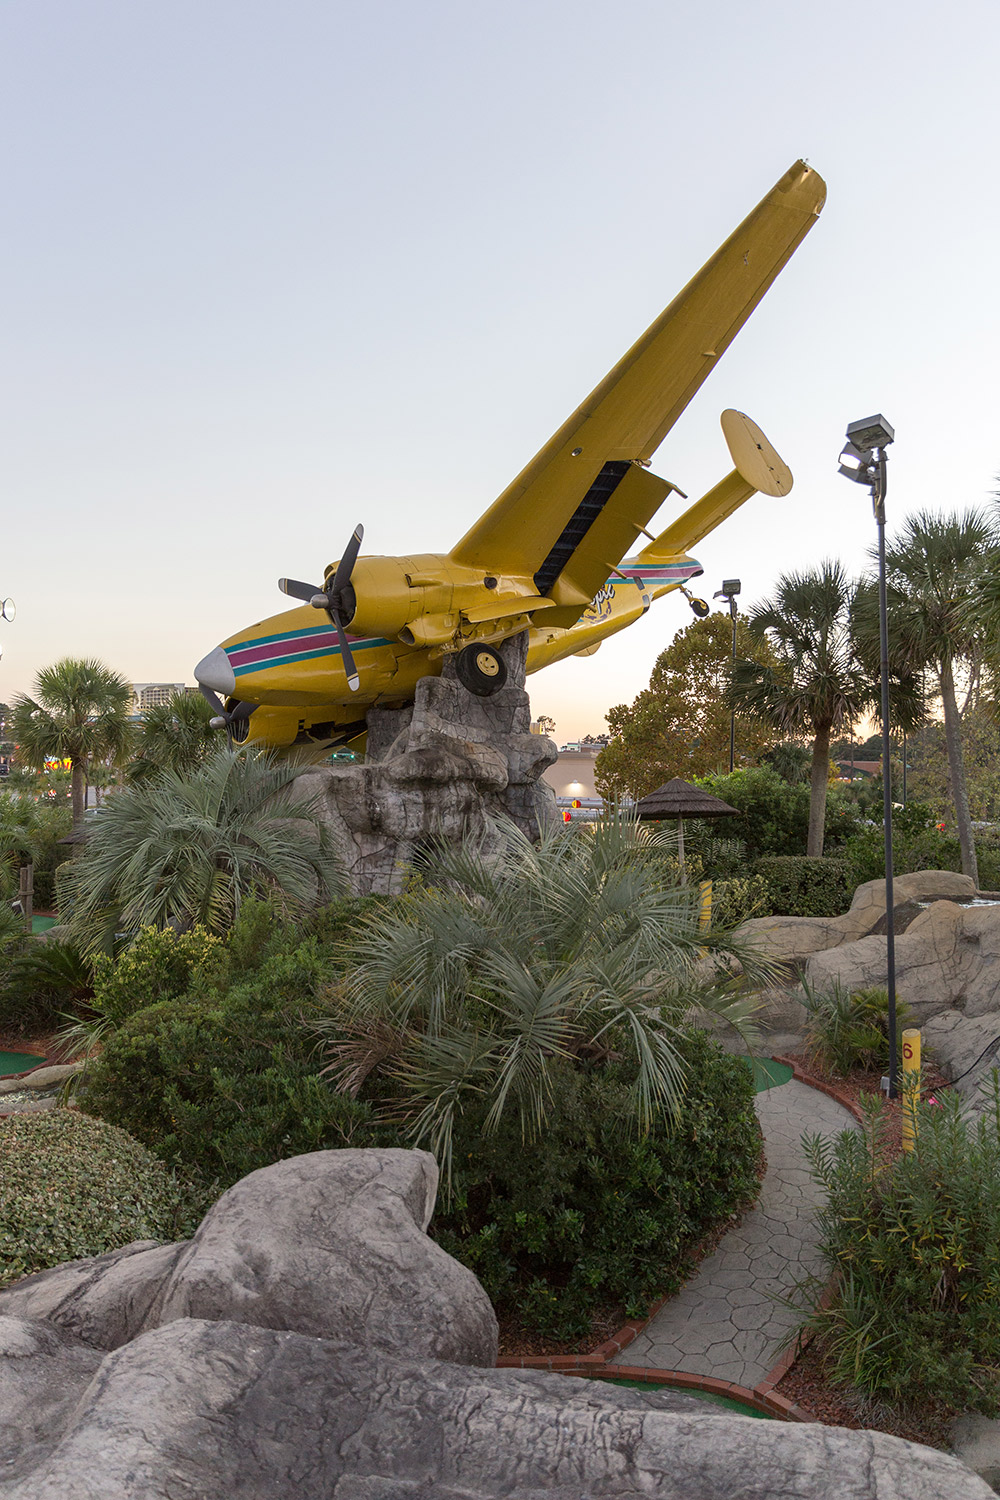 myrtle beach putt putt golf course